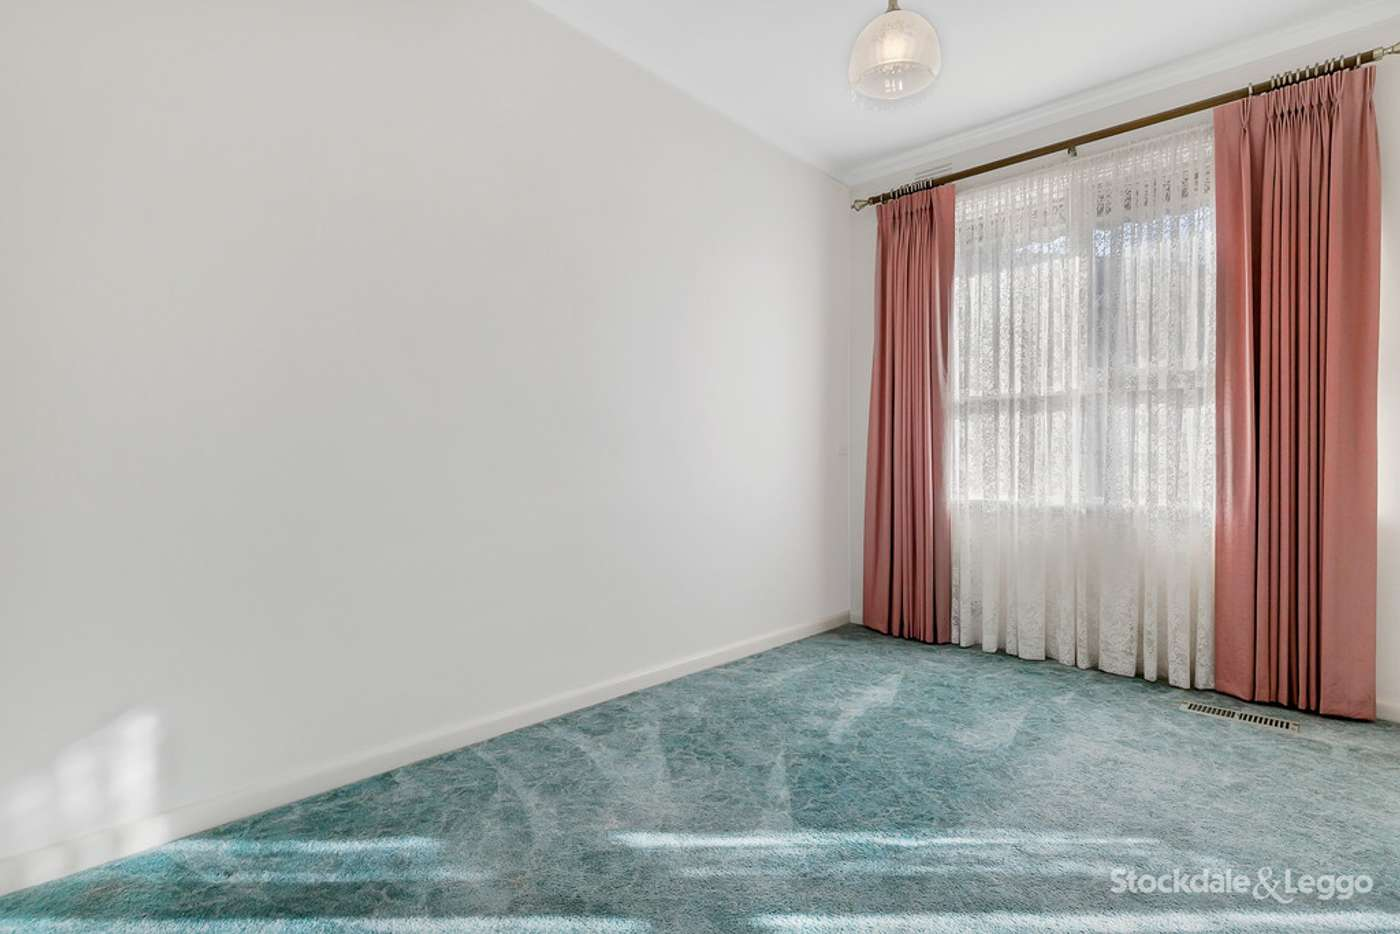 Sixth view of Homely house listing, 49 Cosmos Street, Glenroy VIC 3046